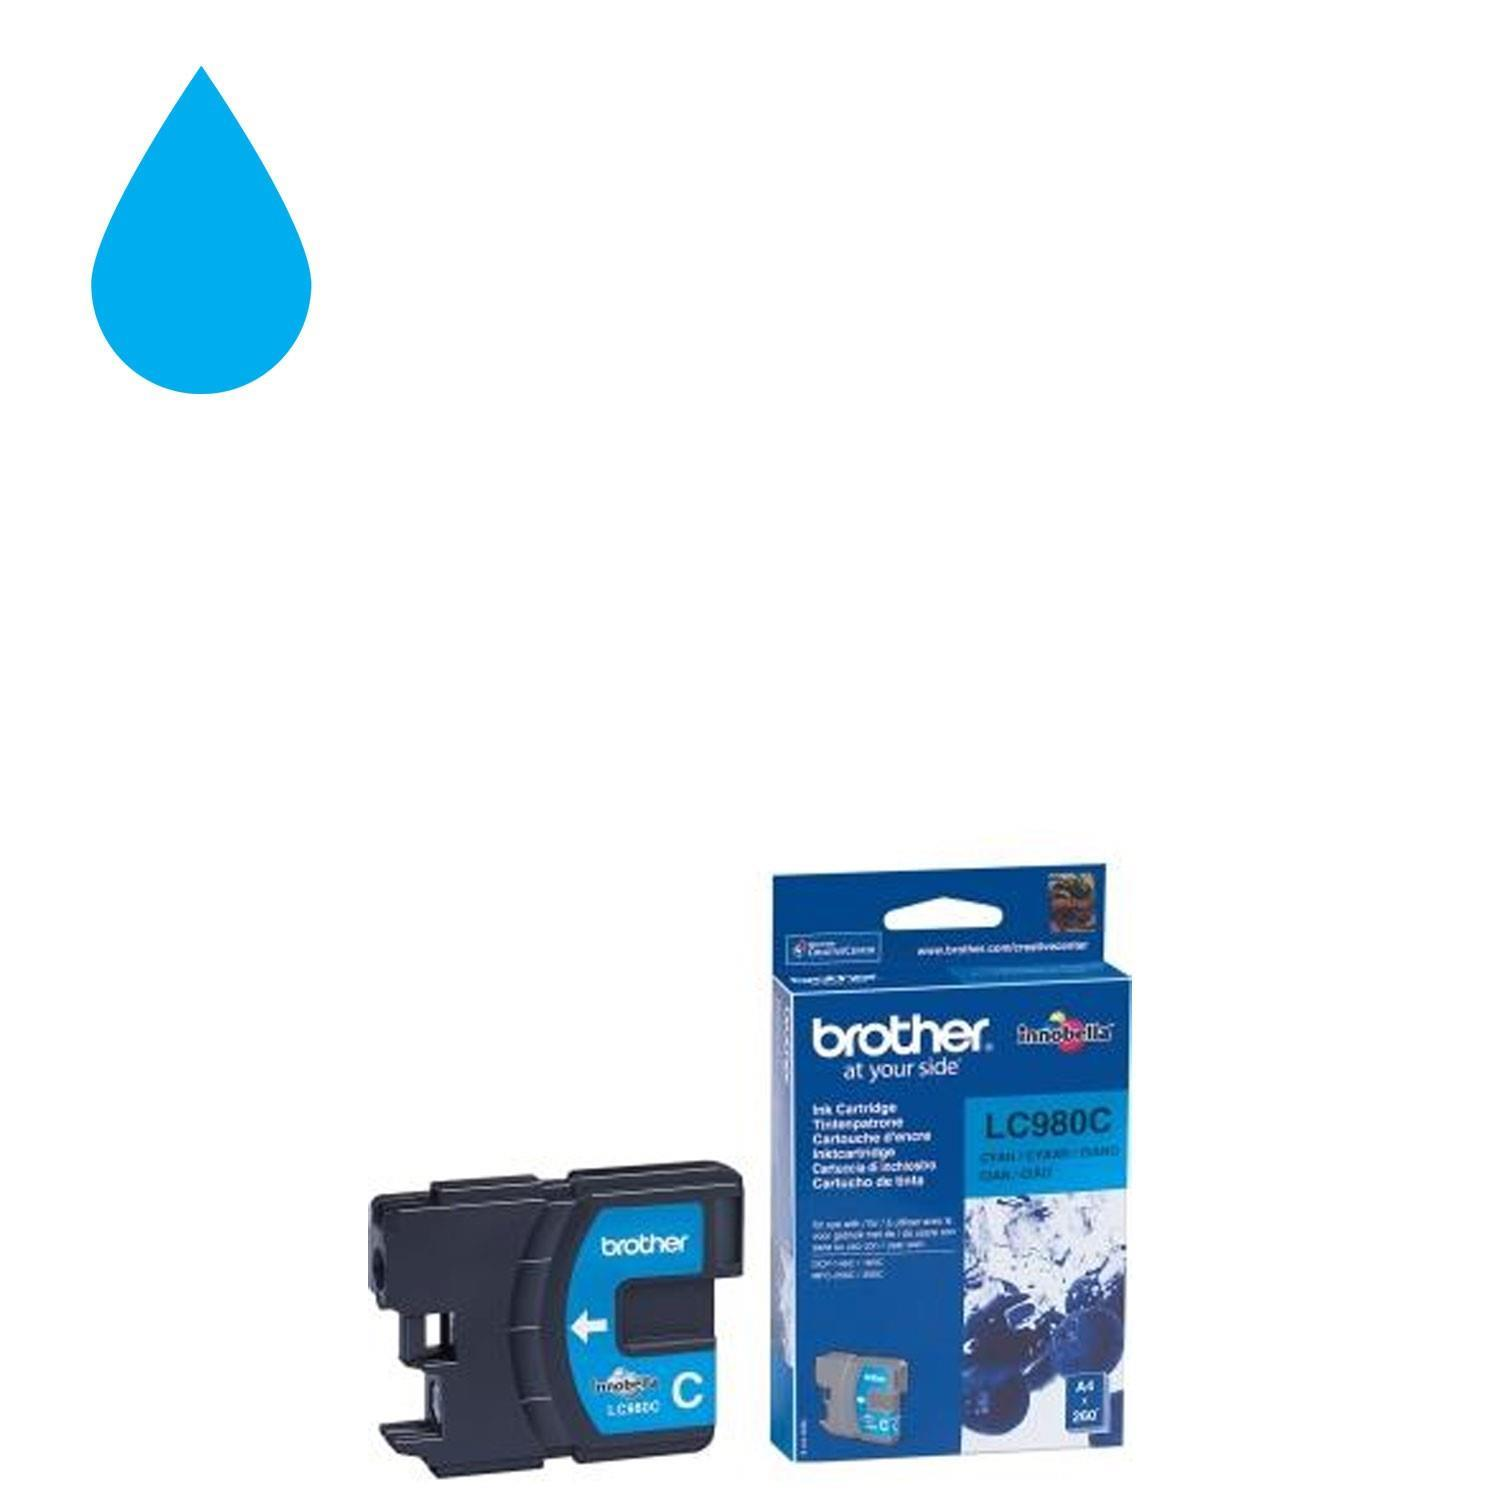 Brother LC-980C Ink Cartridge - Cyan